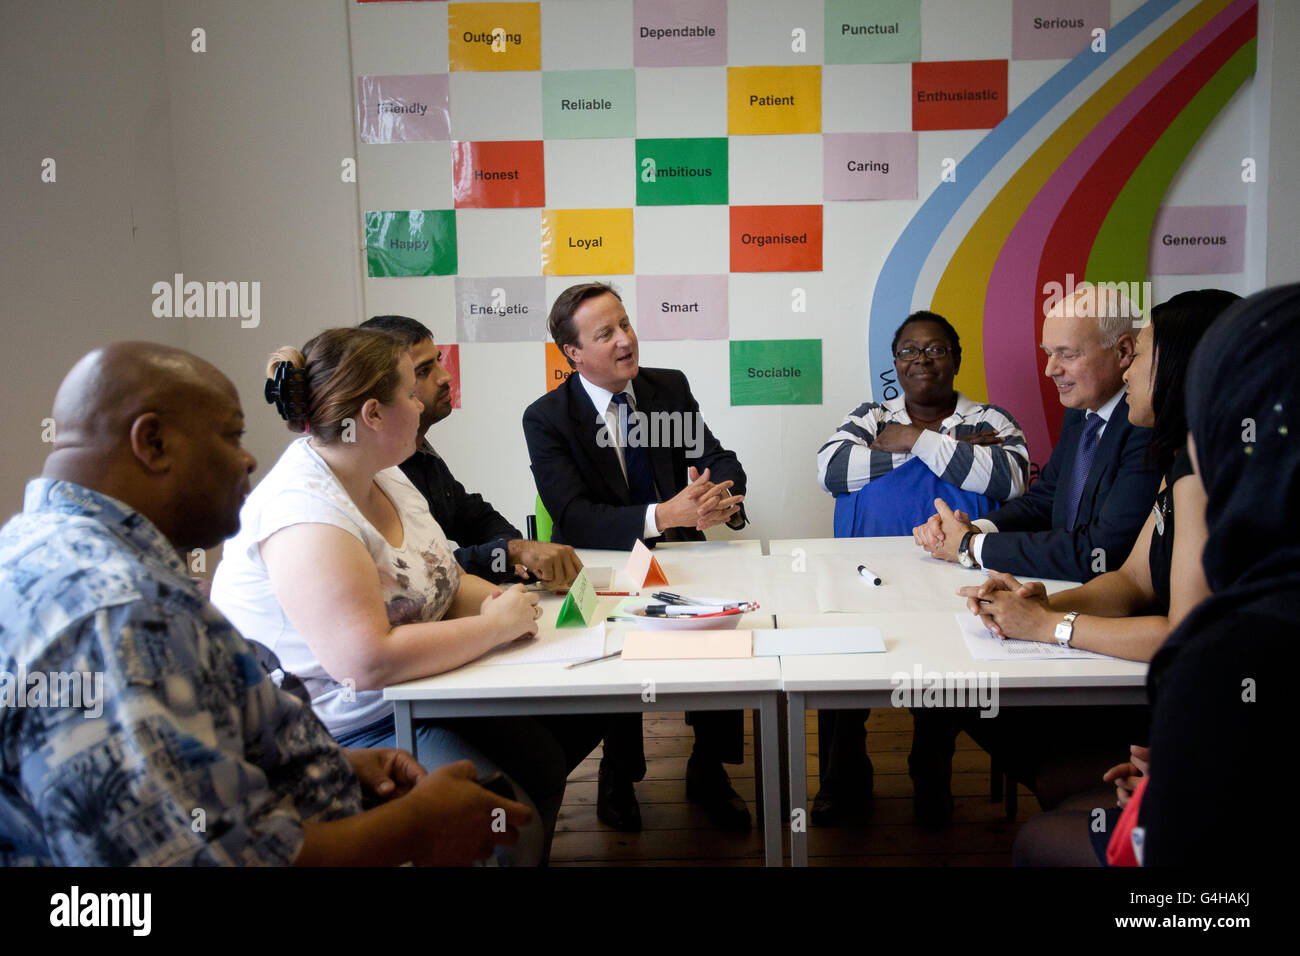 Prime Minister David Cameron and Secretary of State for Work and Pensions Iain Duncan Smith join a transferable skills training session during a visit to the A4e (Action For Employment) offices in Brixton, south London. Stock Photo